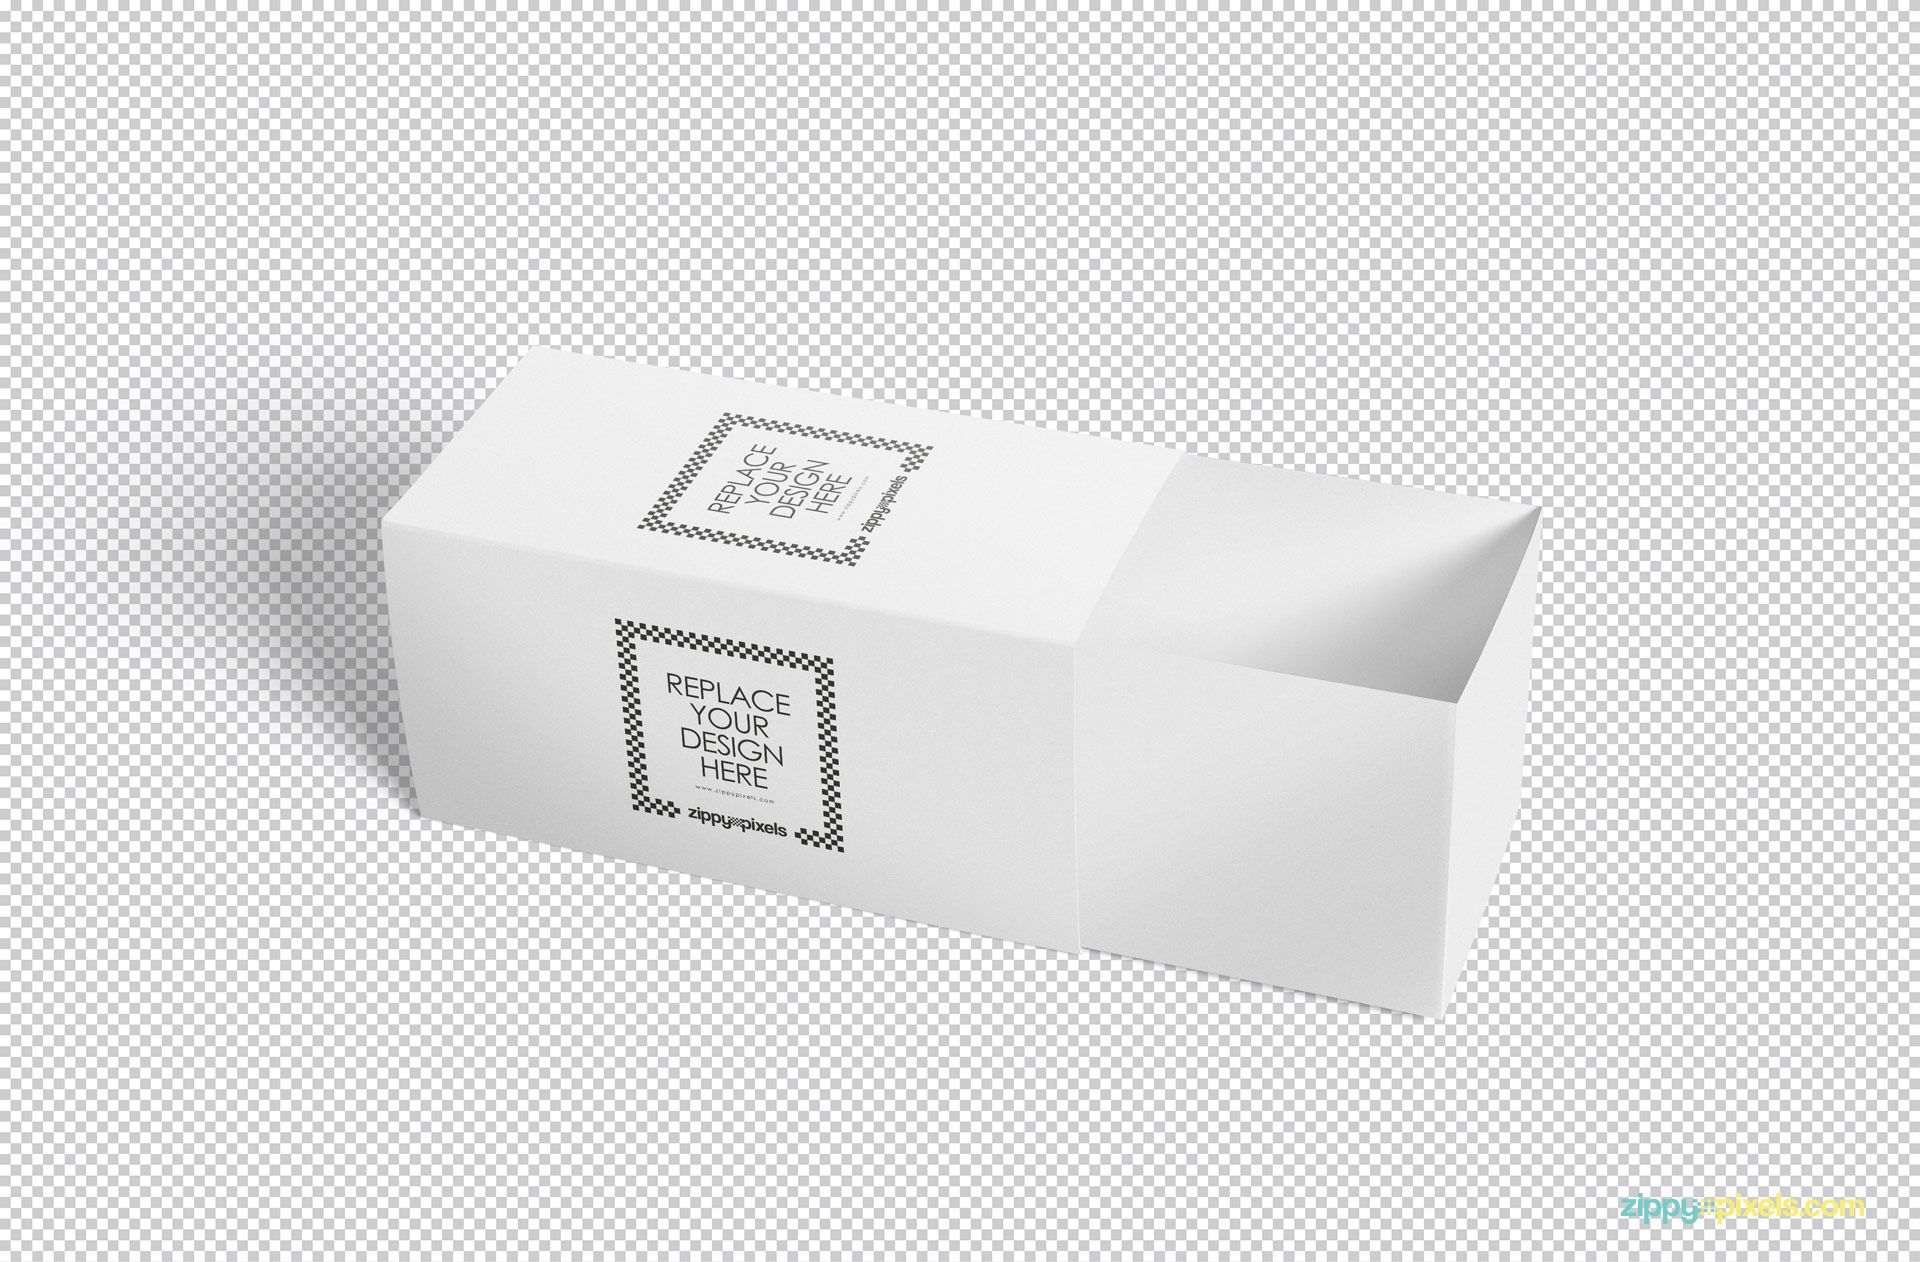 Download 3 Free Cardboard Drawer Box Mockups Zippypixels Box Mockup Drawer Box Slide Box